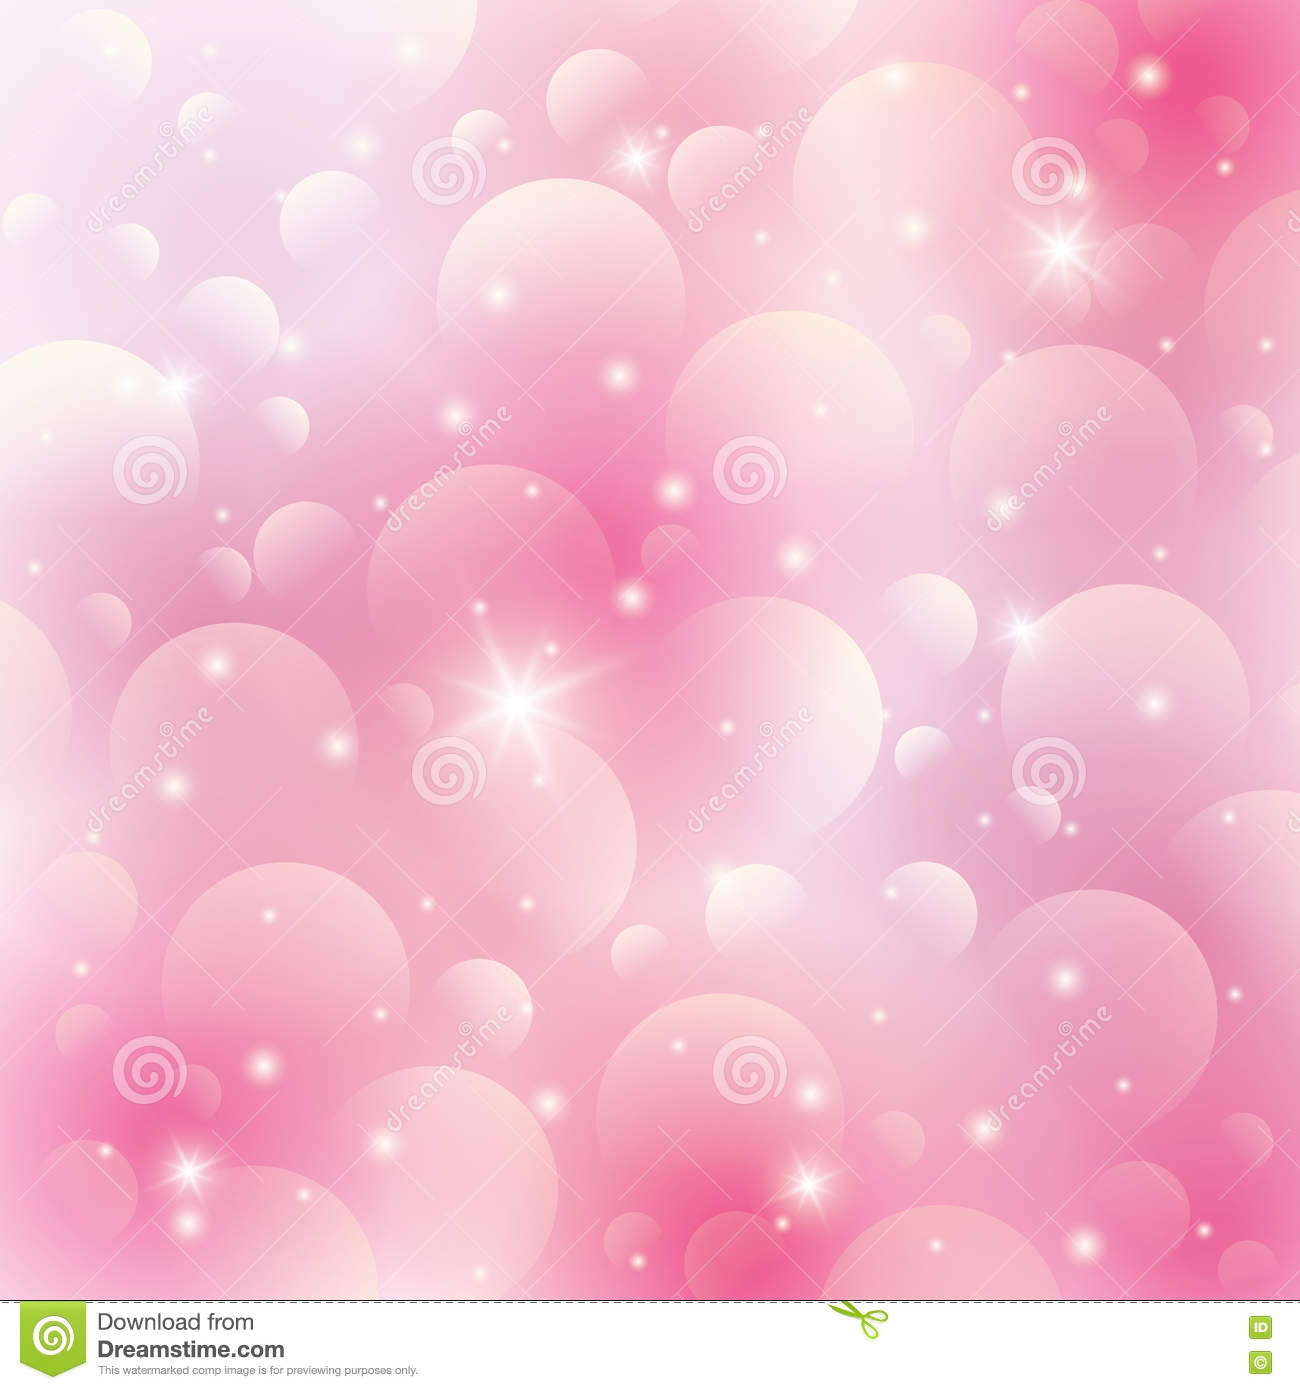 pink background icon wallpaper design  vector graphic